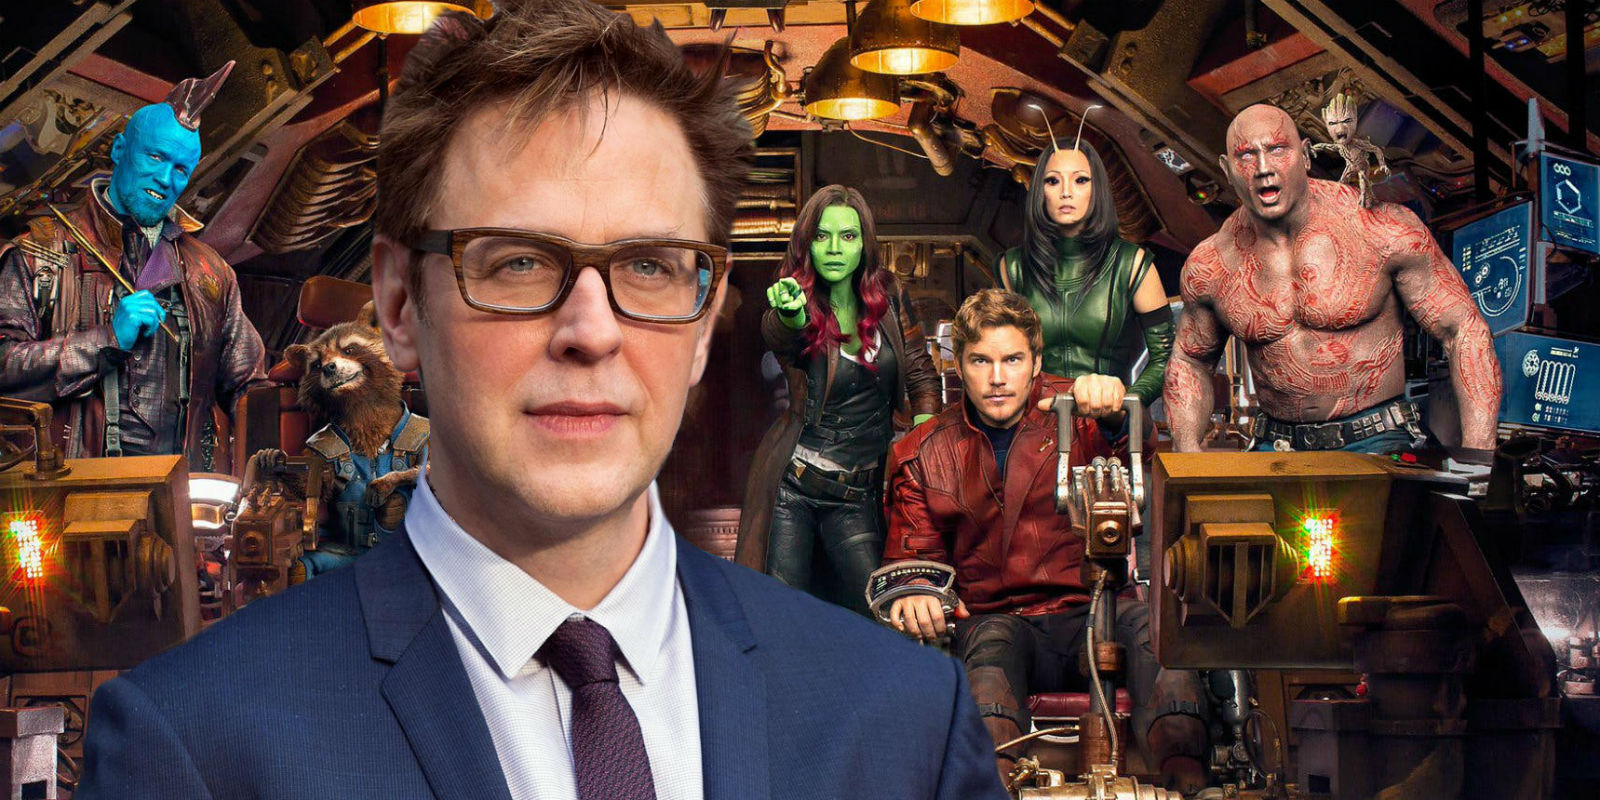 James Gunn vuelve a Marvel para dirigir 'Guardianes de la Galaxia Vol 3'